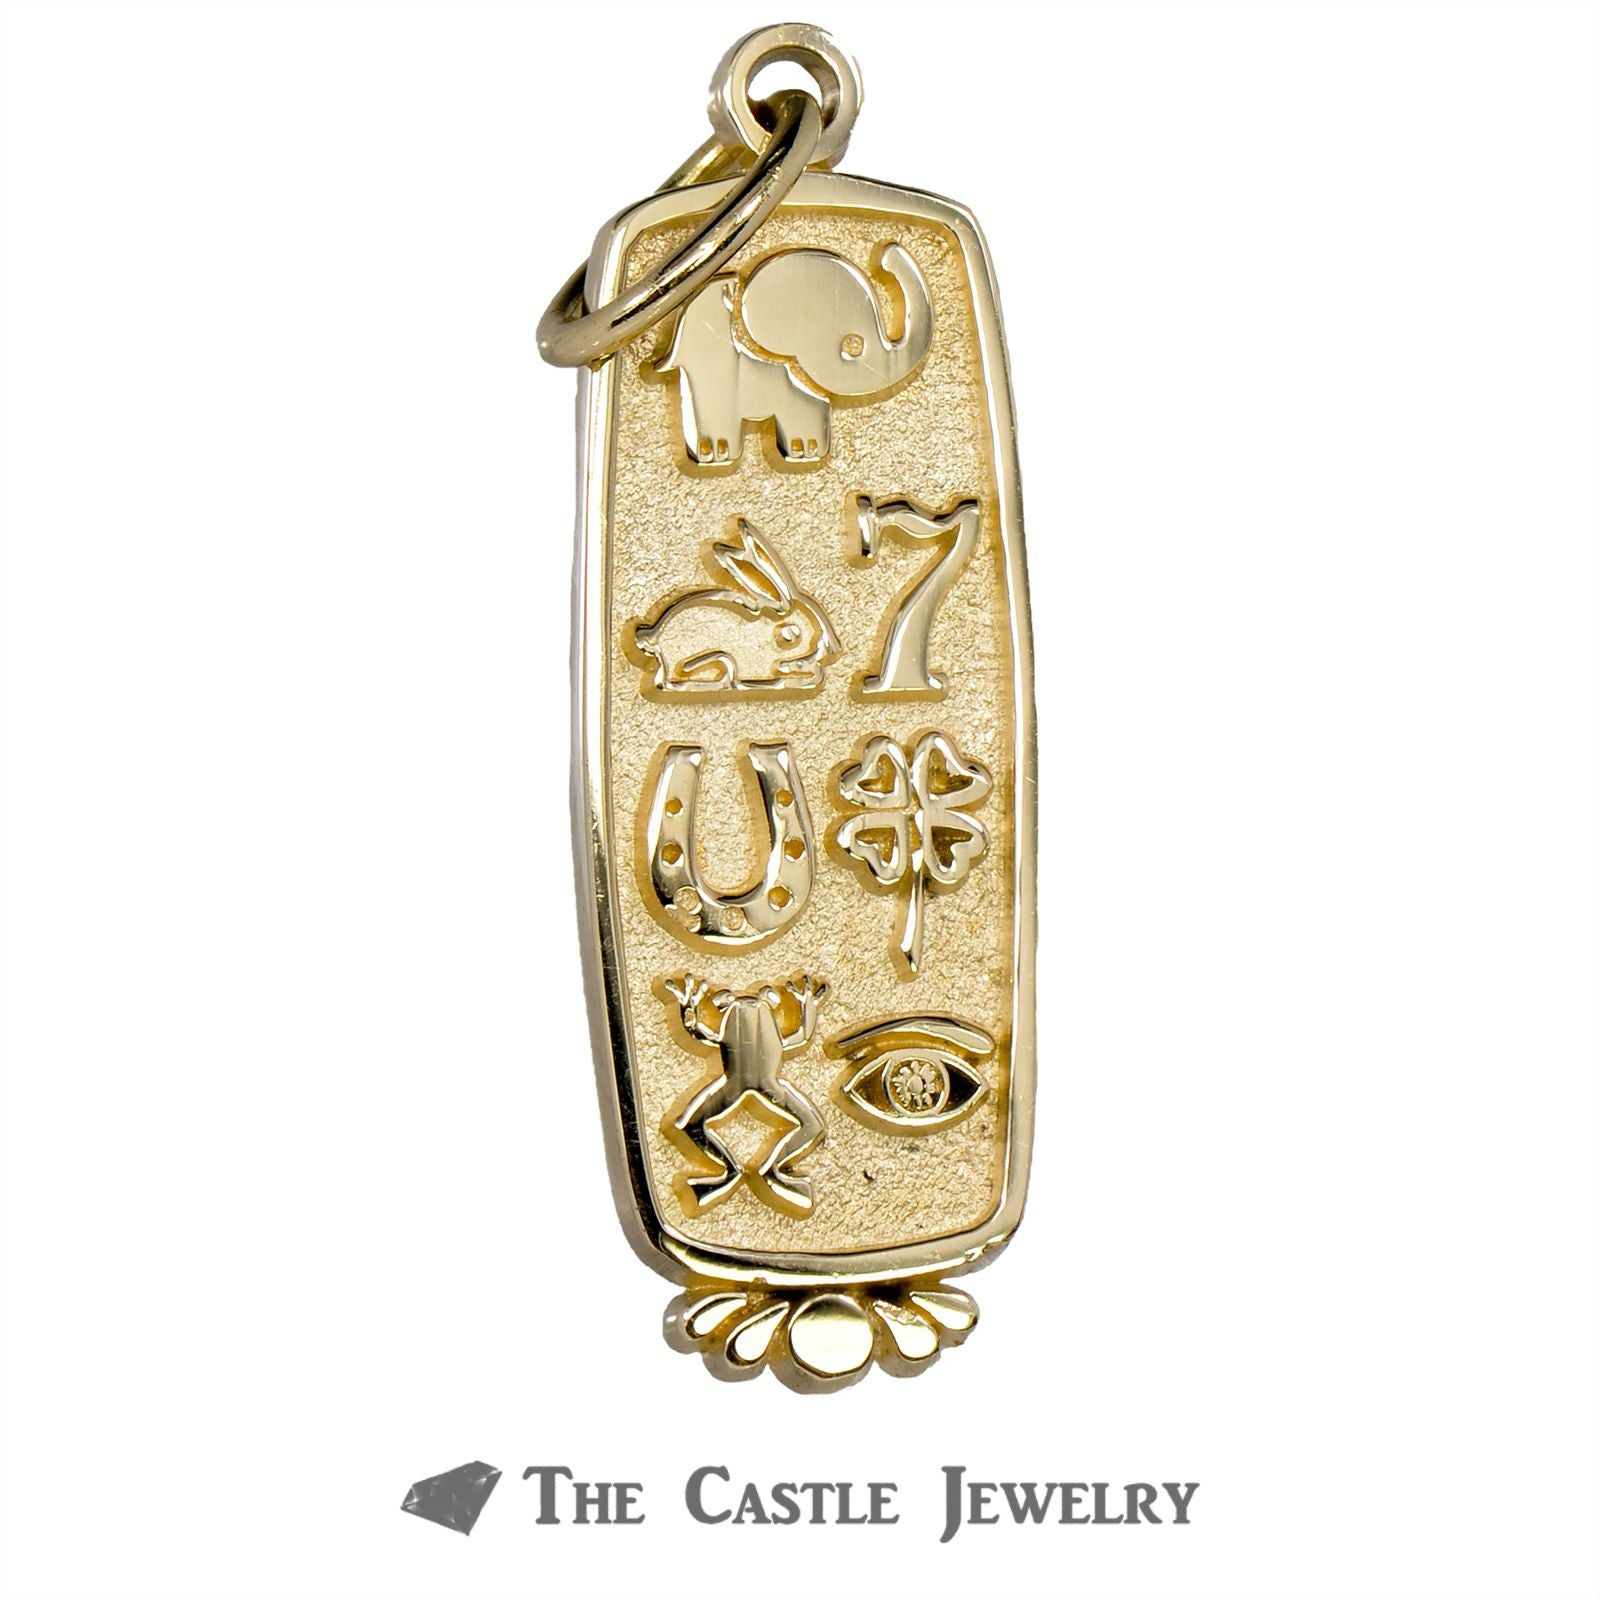 Hieroglyphic Scroll Pendant in 14K Yellow Gold